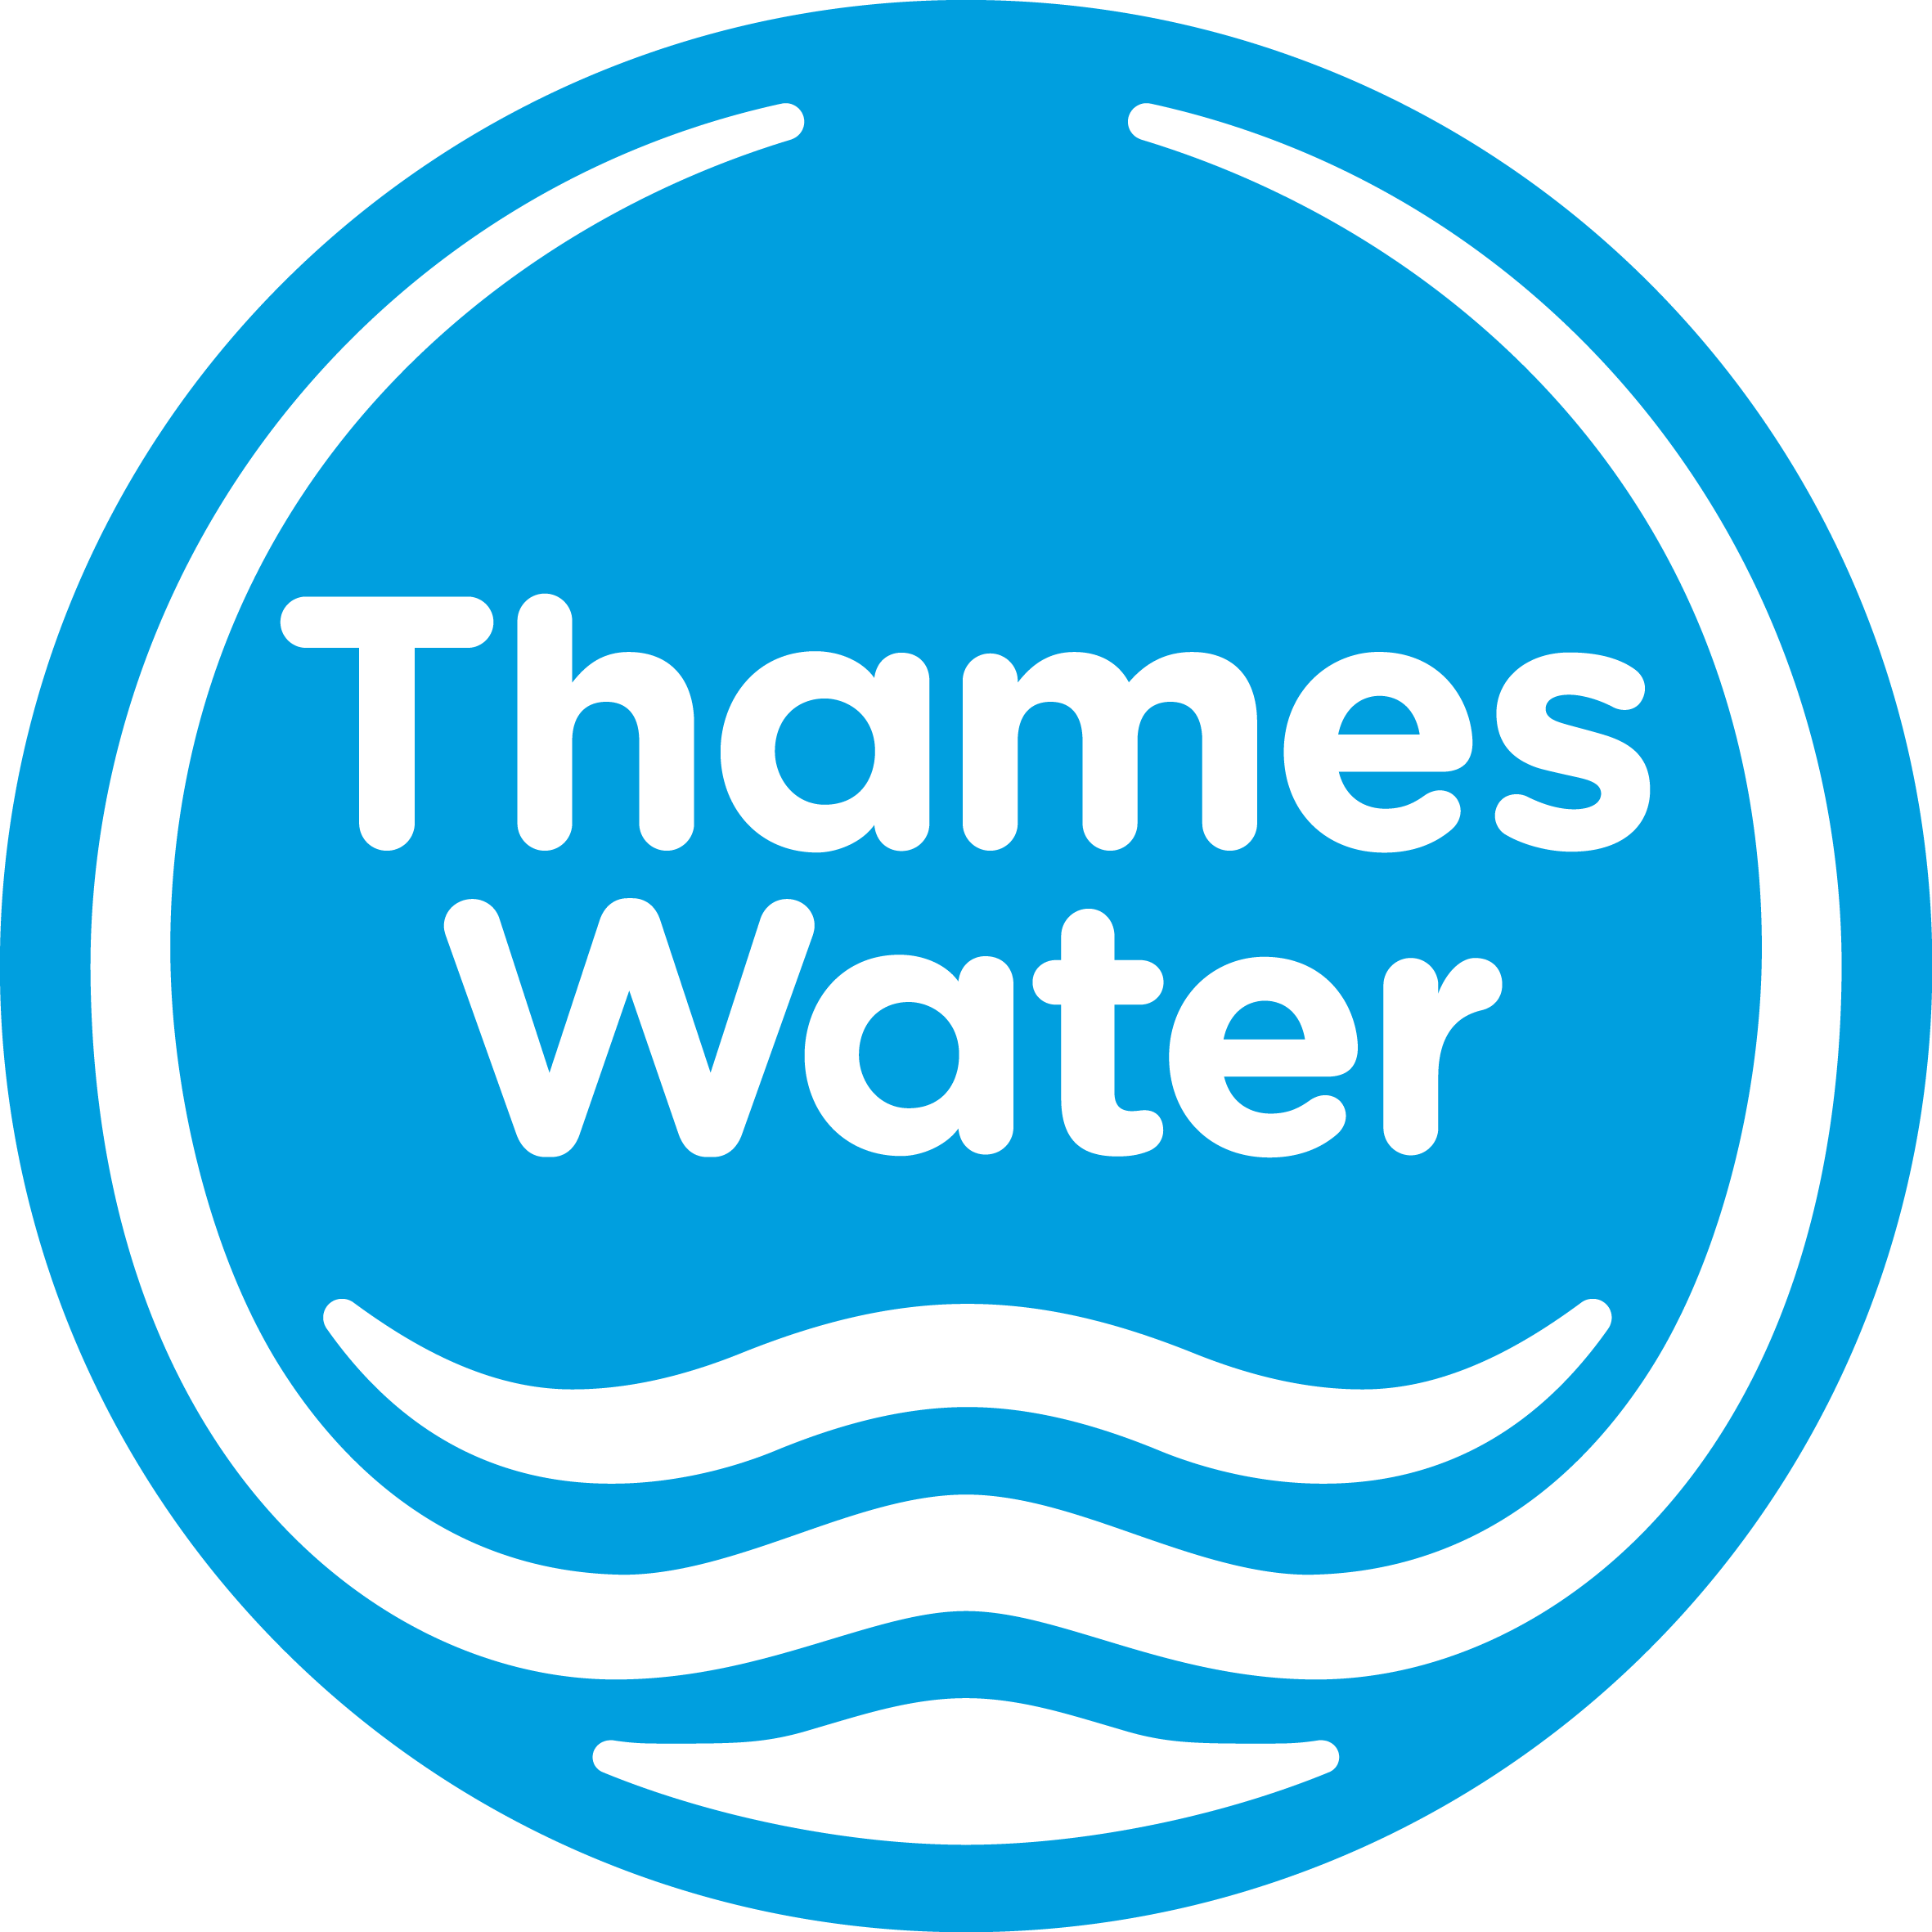 Thames Water logo blue low